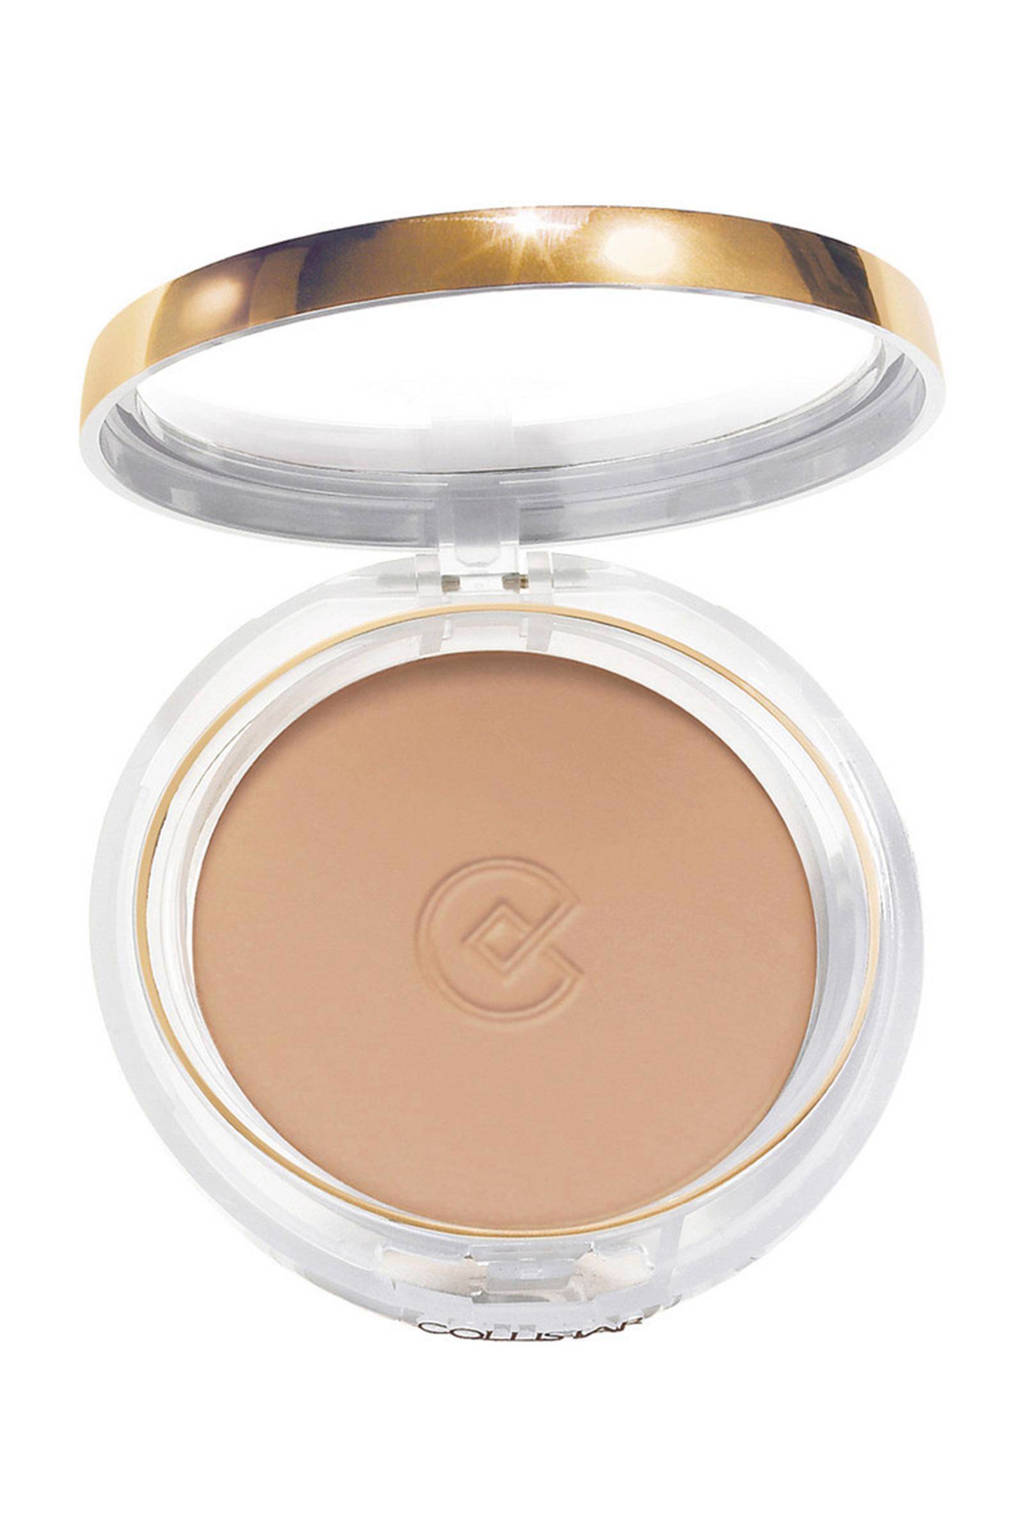 Collistar Silk Effect Compact poeder - 04 Capuccino, Cappuccino